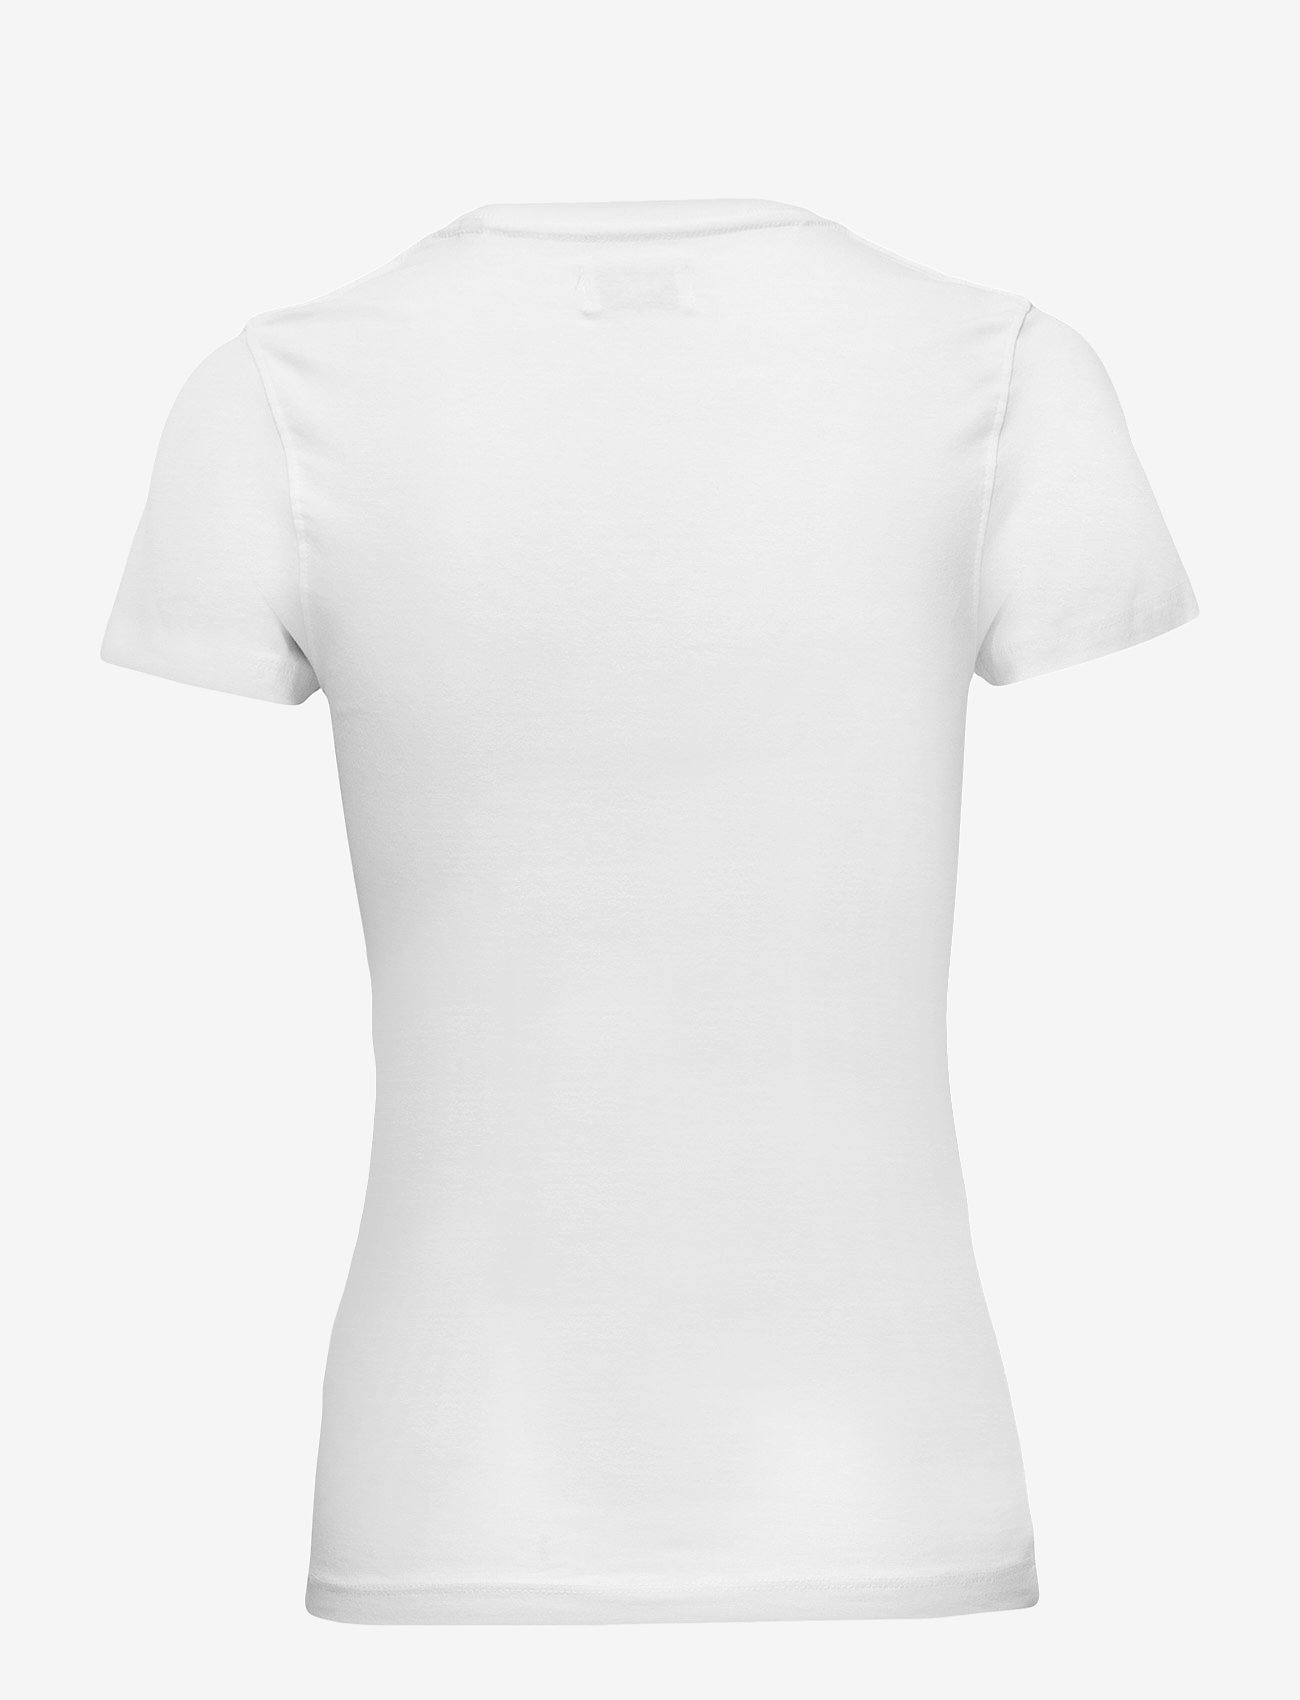 Boozt Merchandise - Womens stretch O-neck tees/s - t-shirts - white - 1